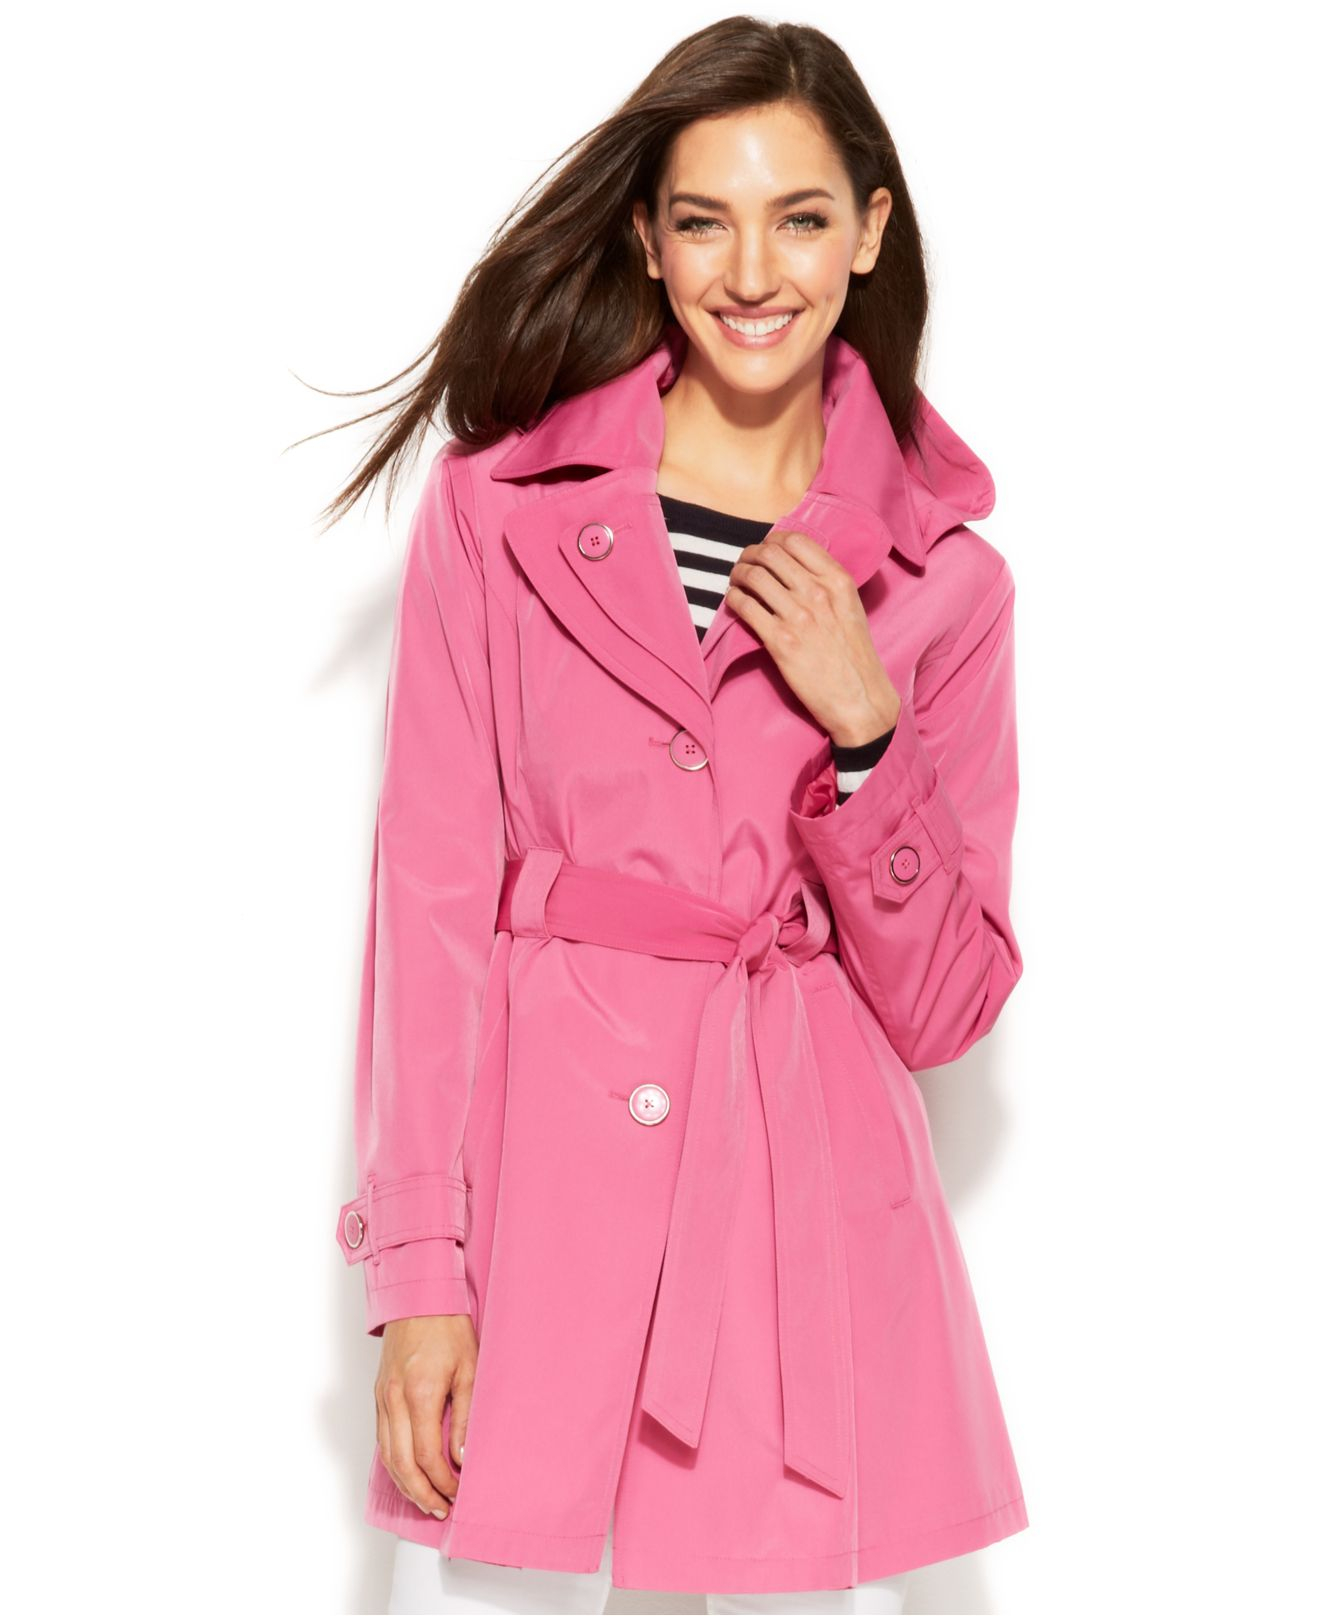 8054becfb48 Lyst - London Fog Hooded Layered-Lapel Trench Coat in Pink